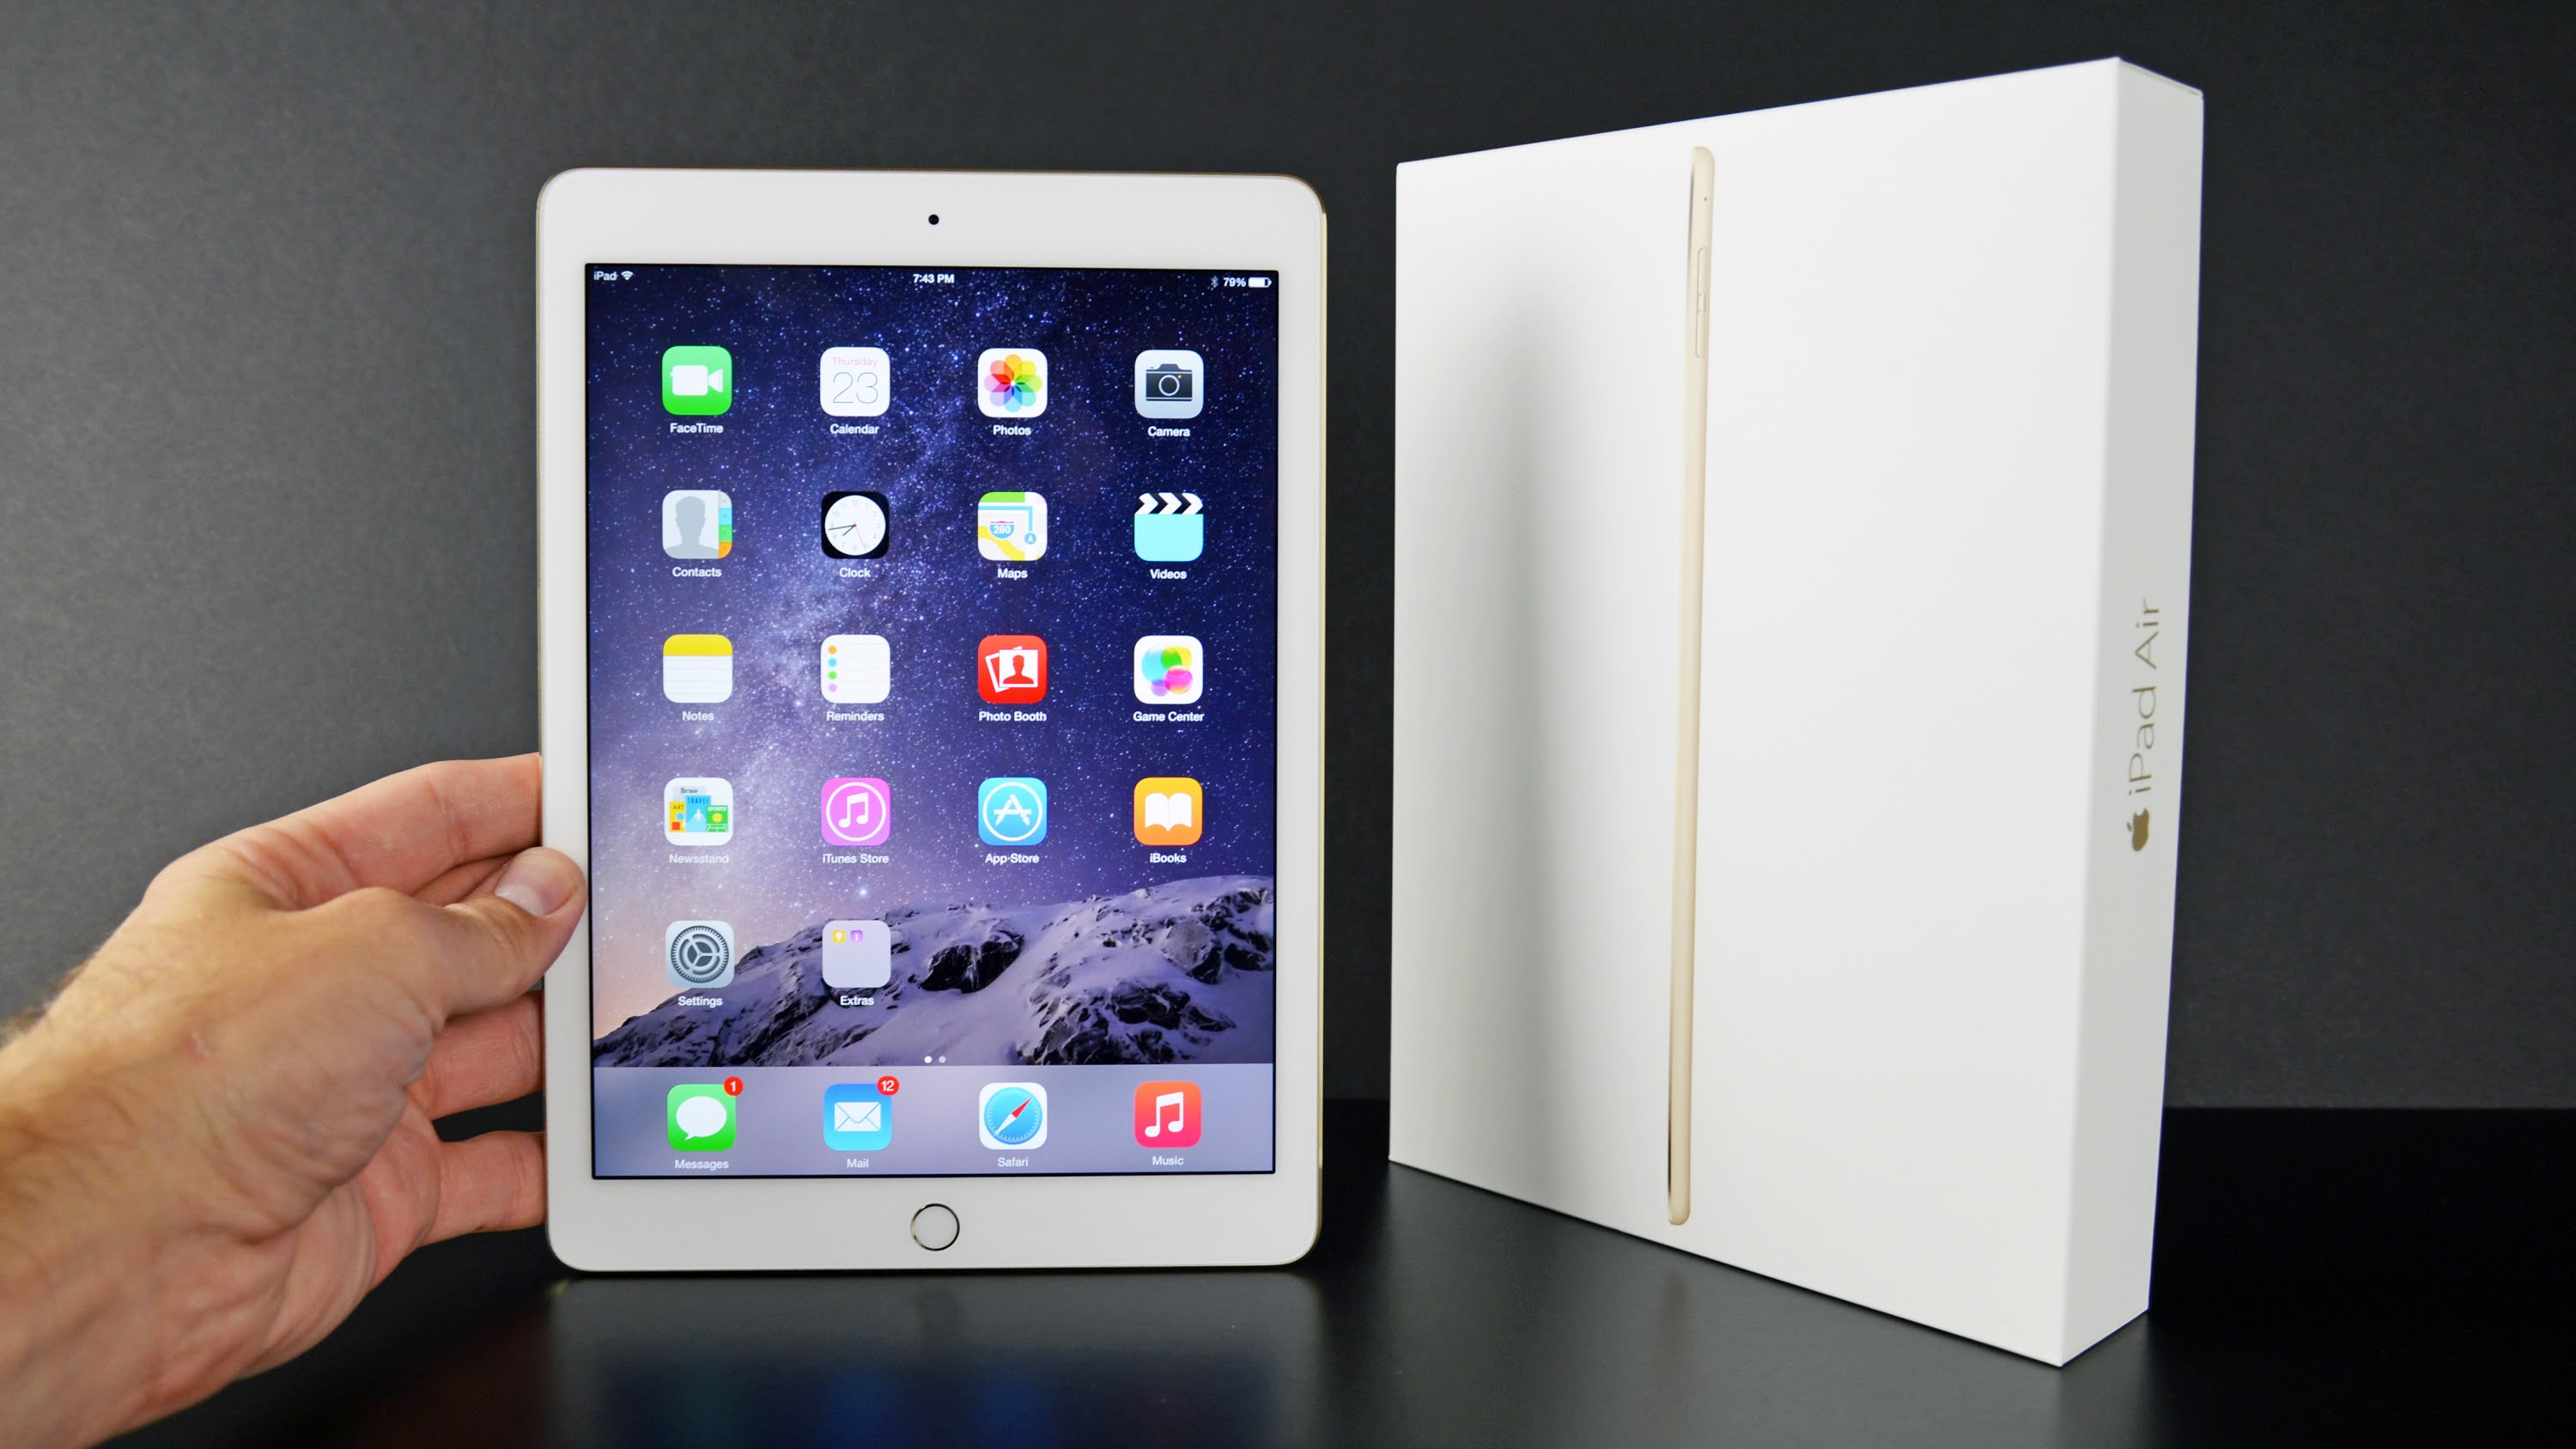 ipad air 2 vous pouvez conomiser jusqu 39 100 meilleur mobile. Black Bedroom Furniture Sets. Home Design Ideas